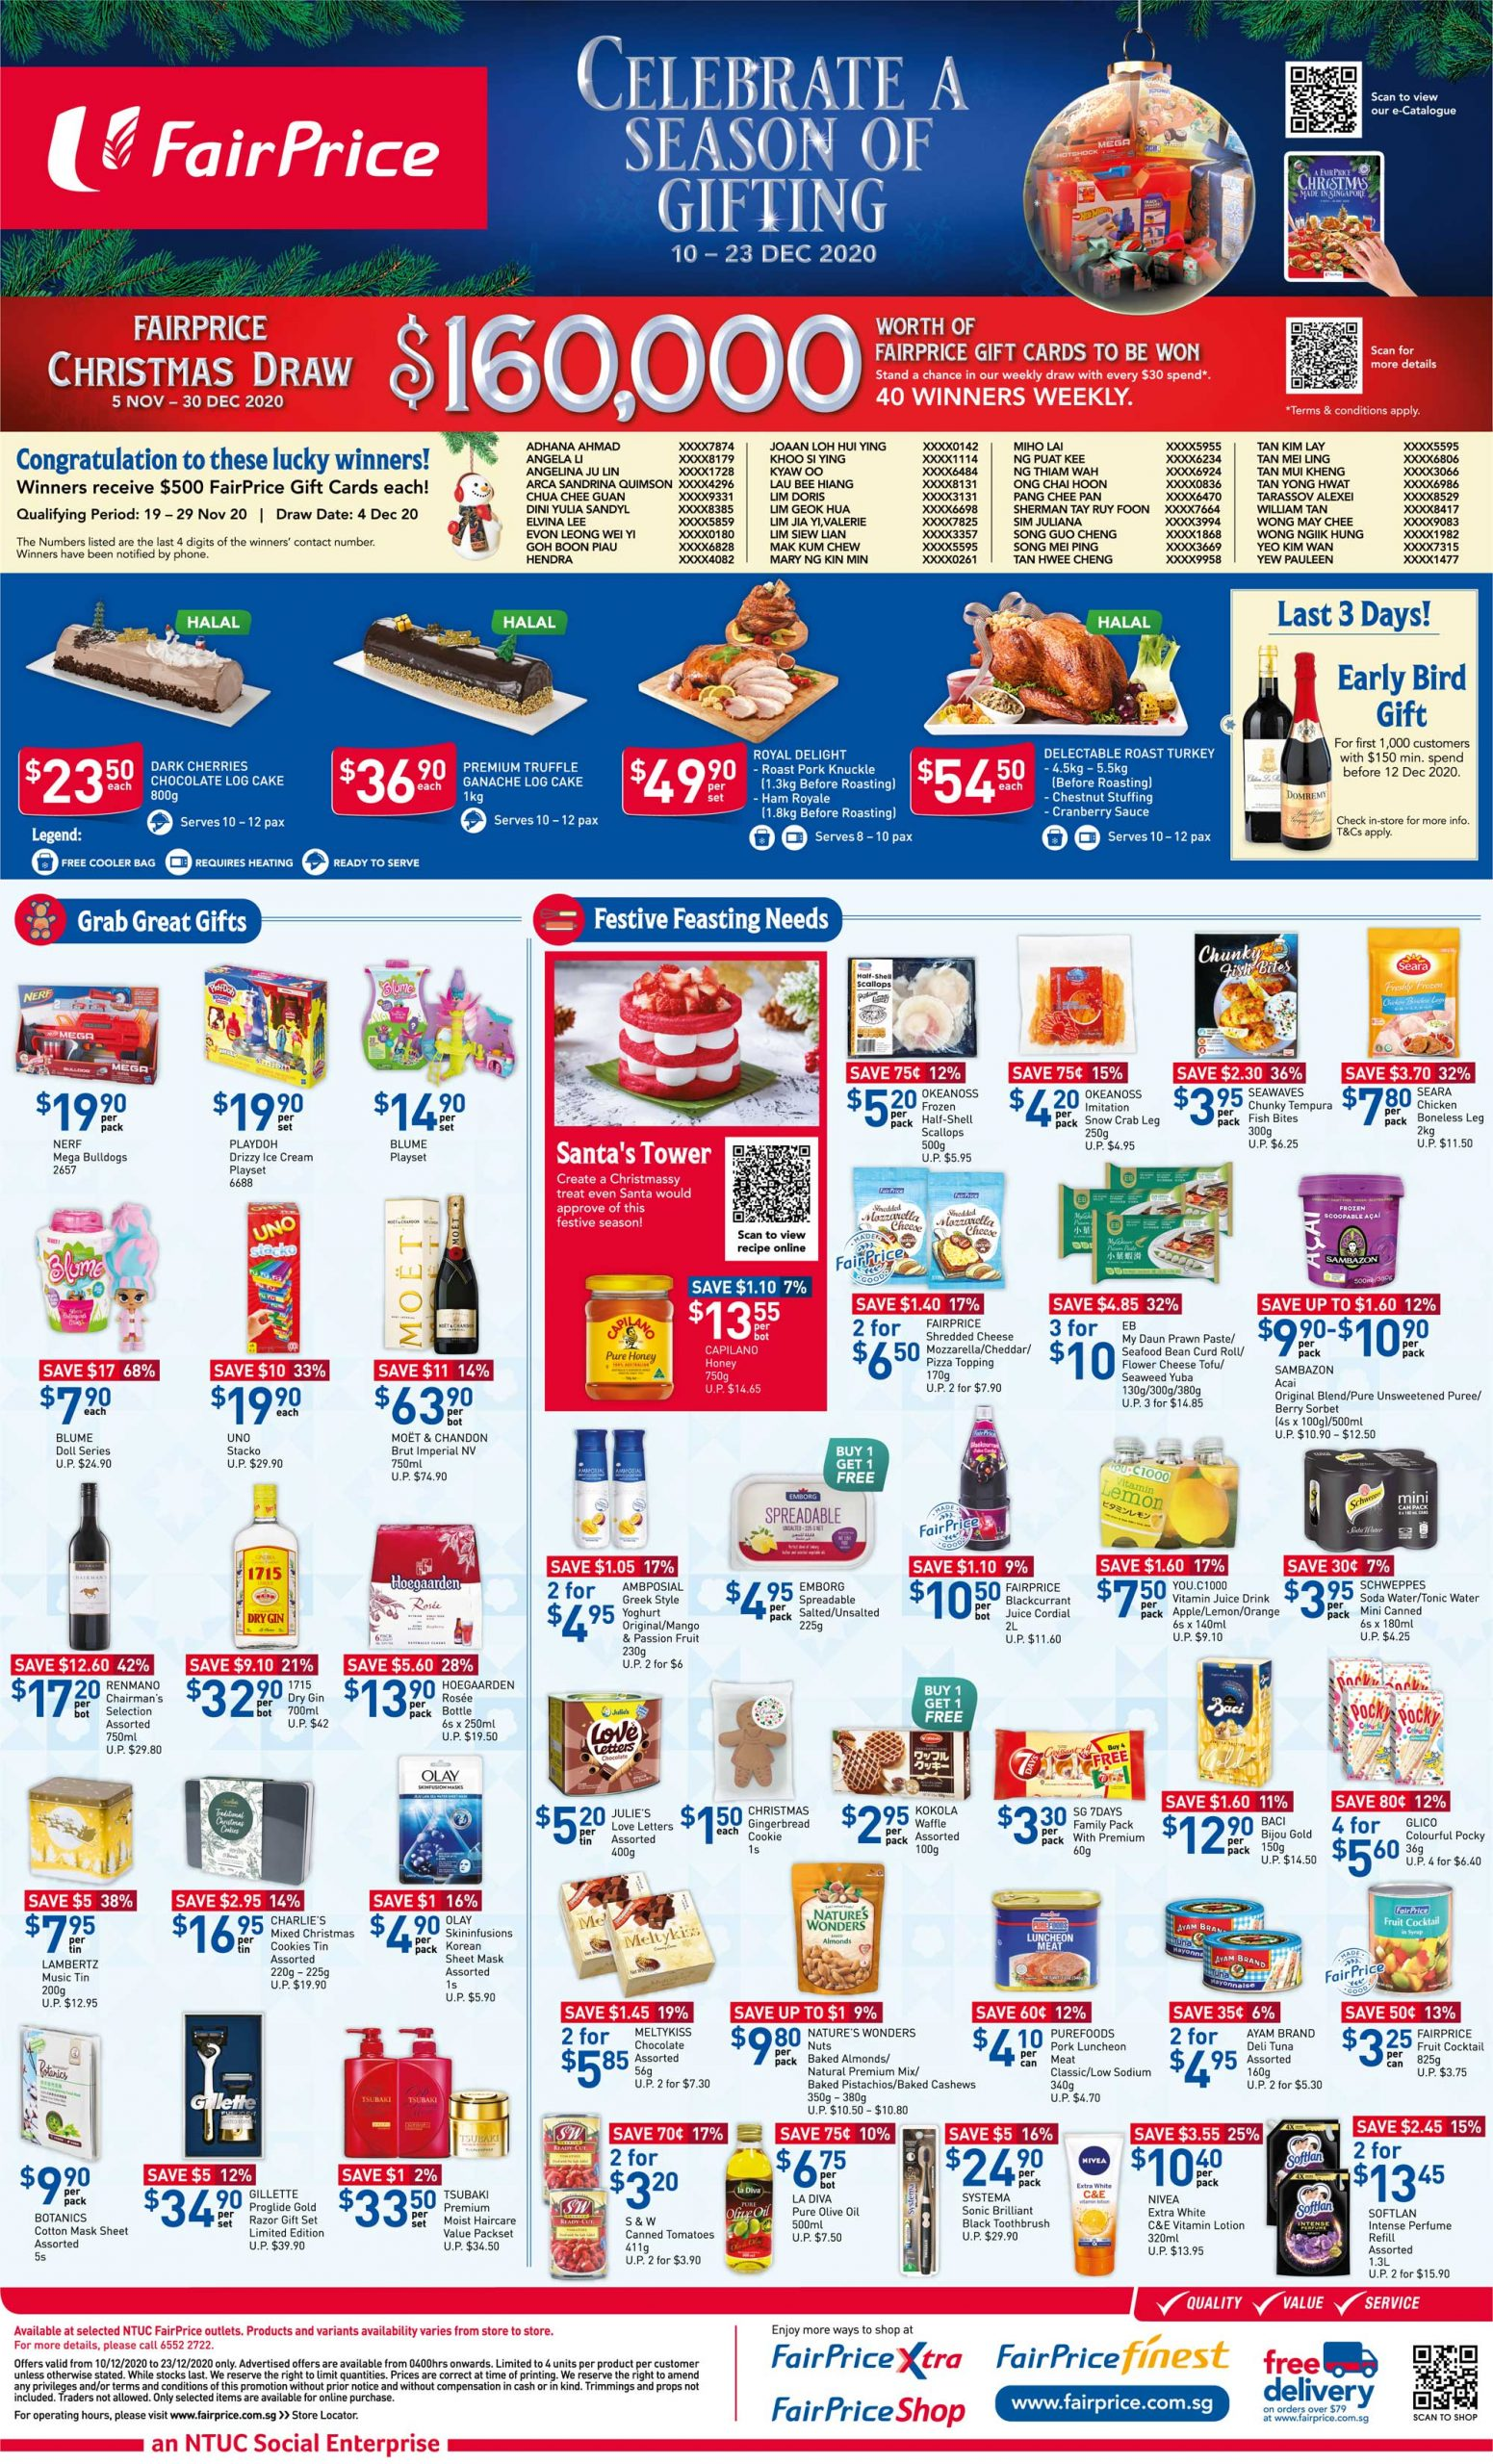 Celebrate a season of gifting with FairPrice from now till 23 December 2020